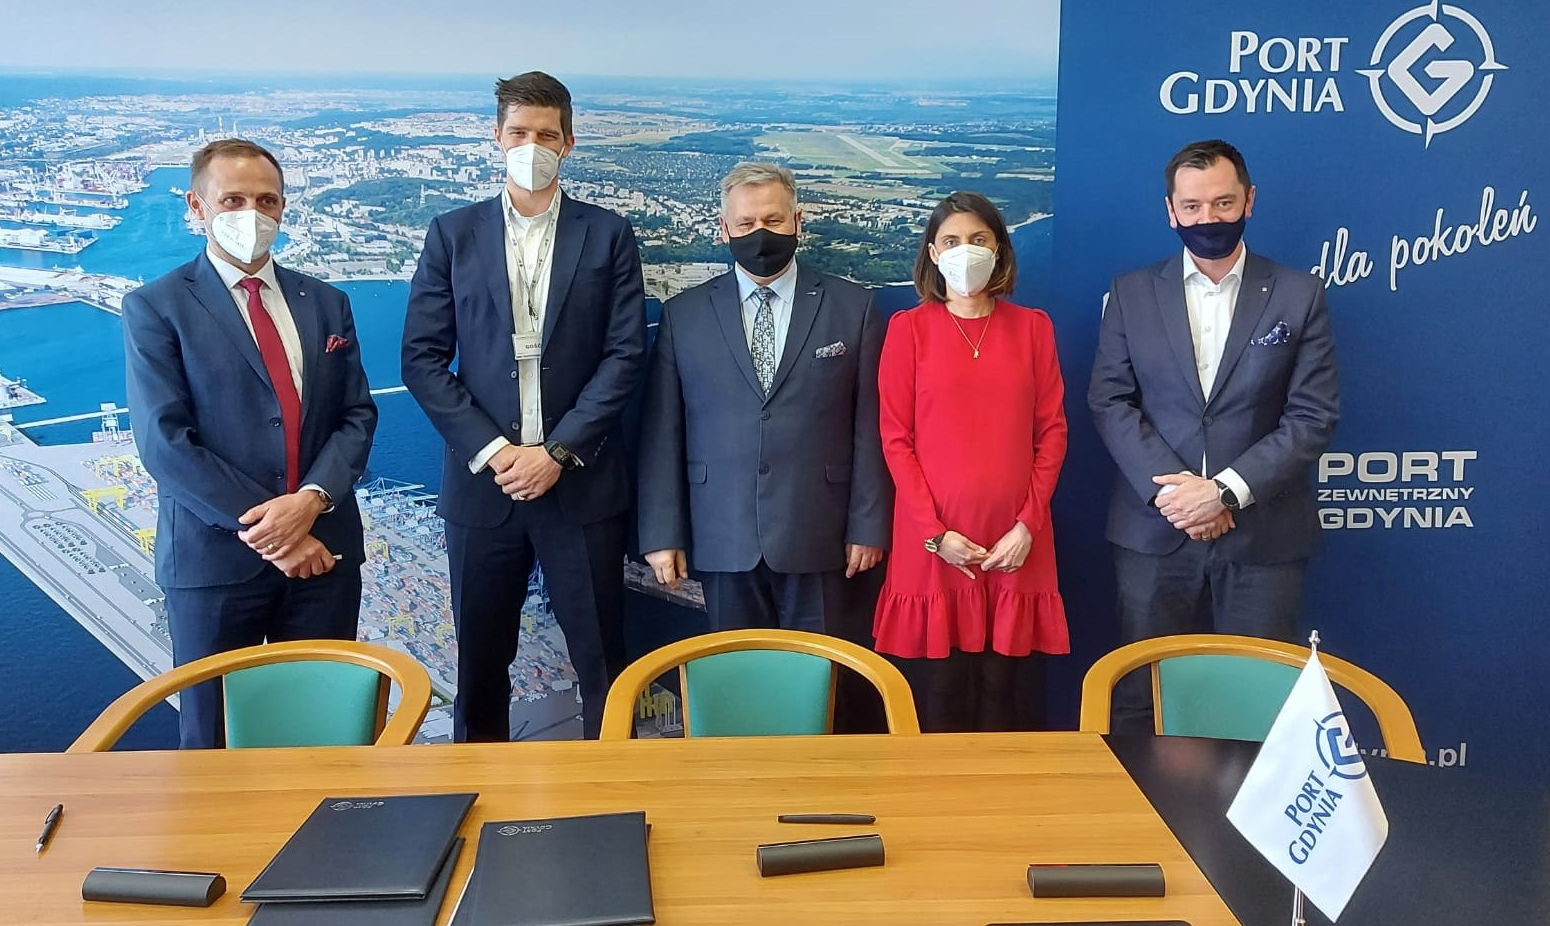 Ørsted and Port of Gdynia to Cooperate on Next-Generation Technology